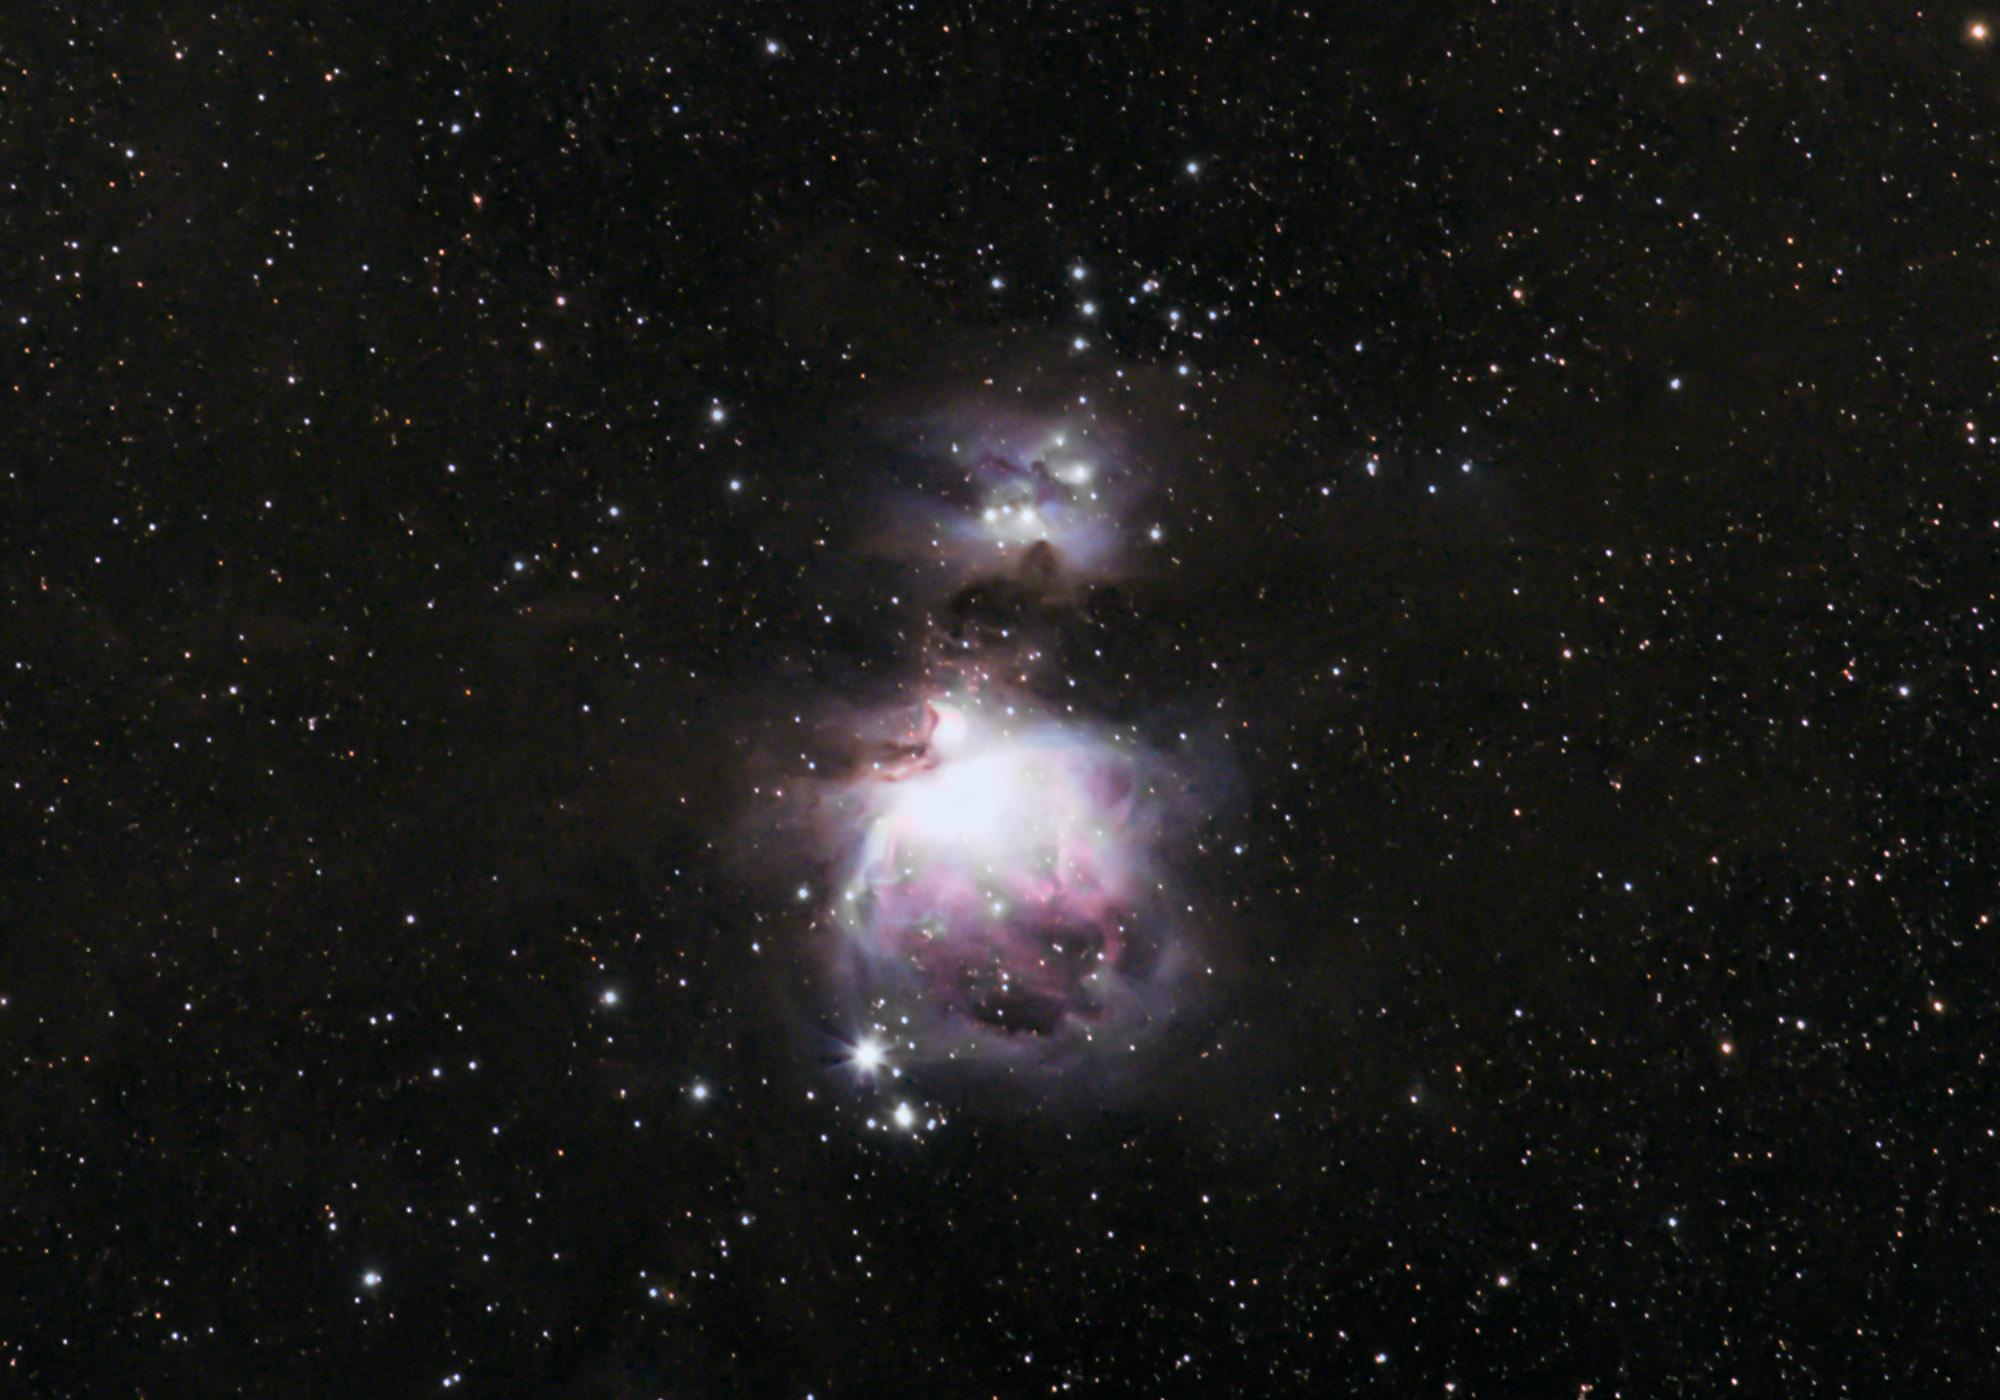 Orion 2019/2020